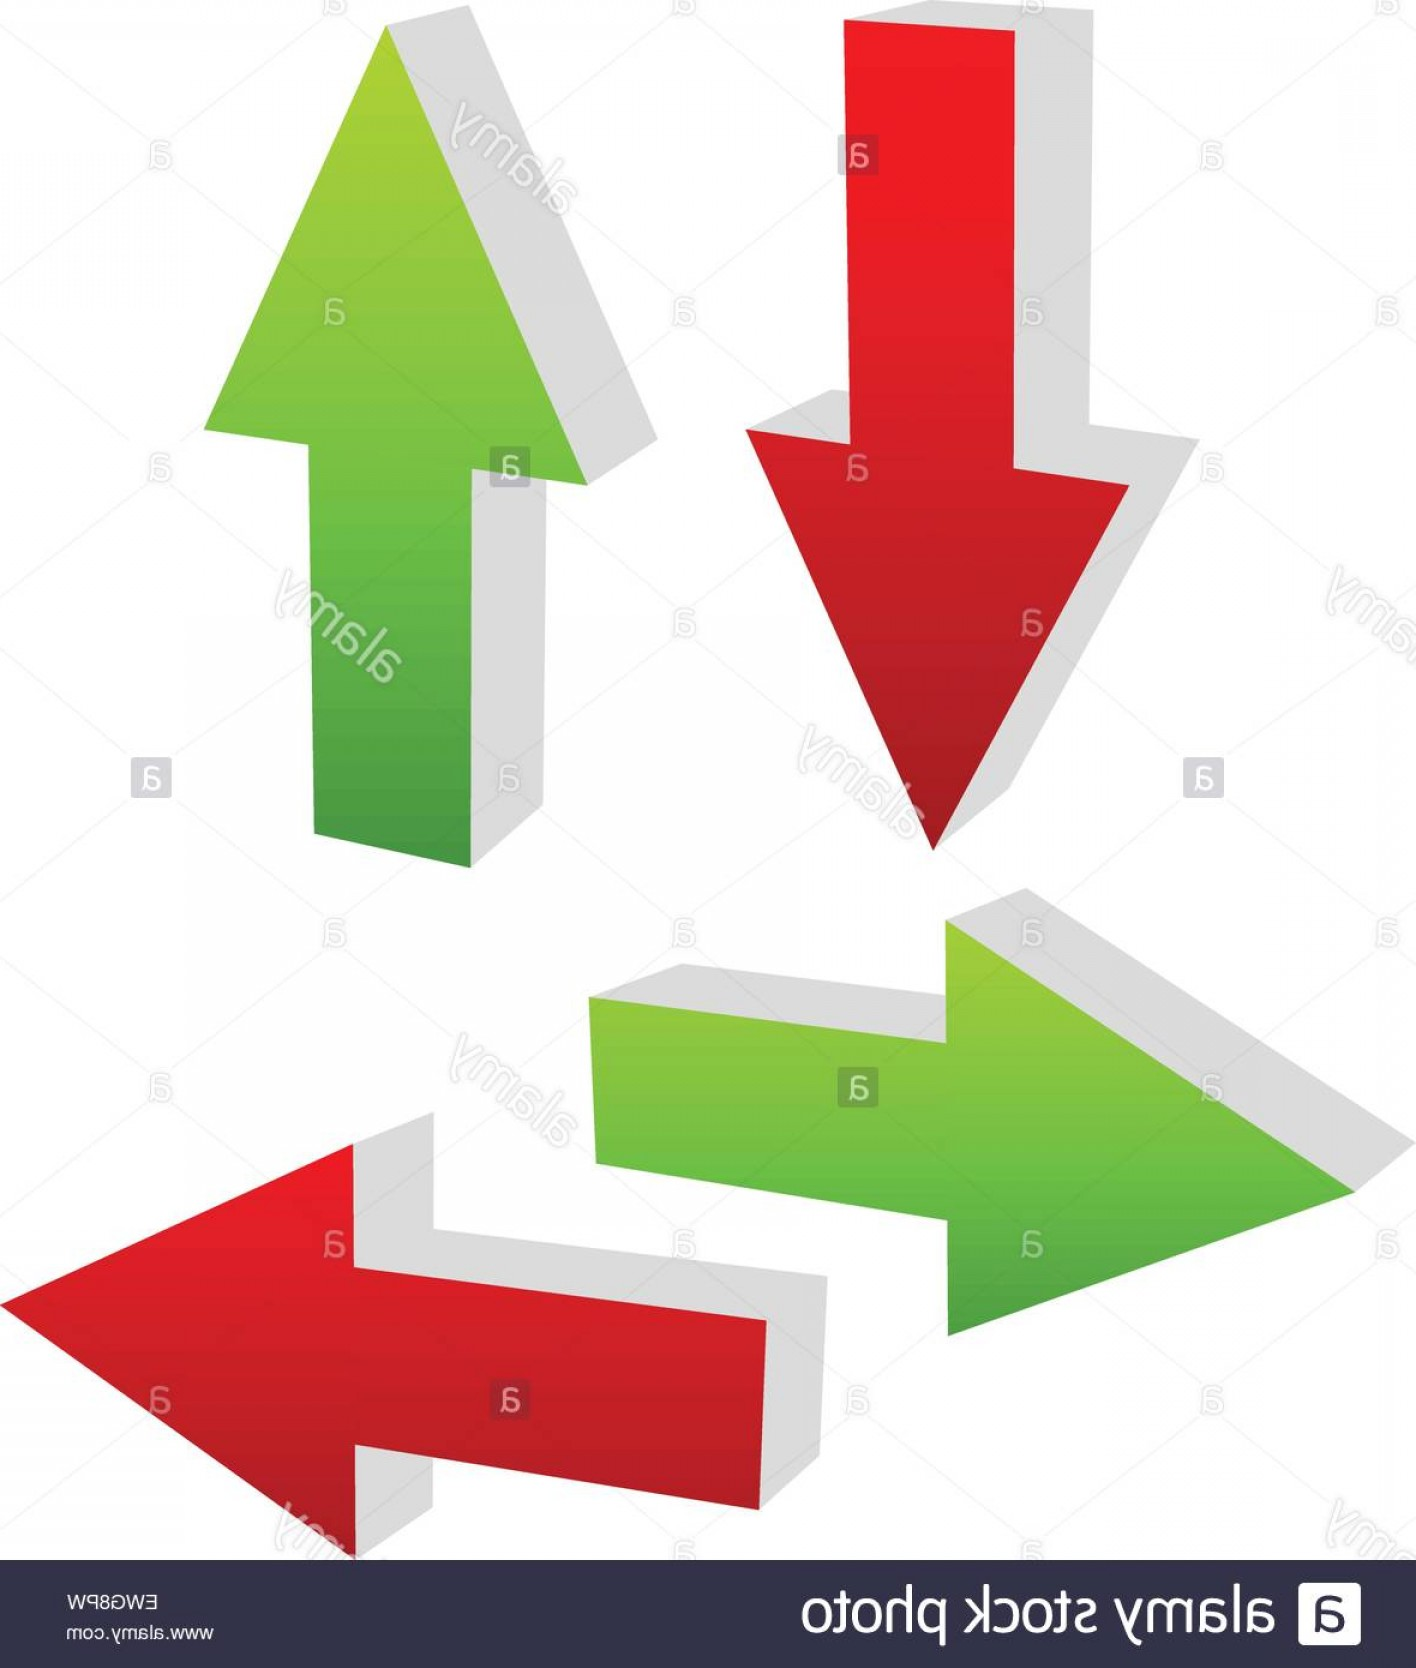 Up And Right Arrows Vector: Stock Photo D Green And Red Arrows Pointing To Different Directions Up Down Left